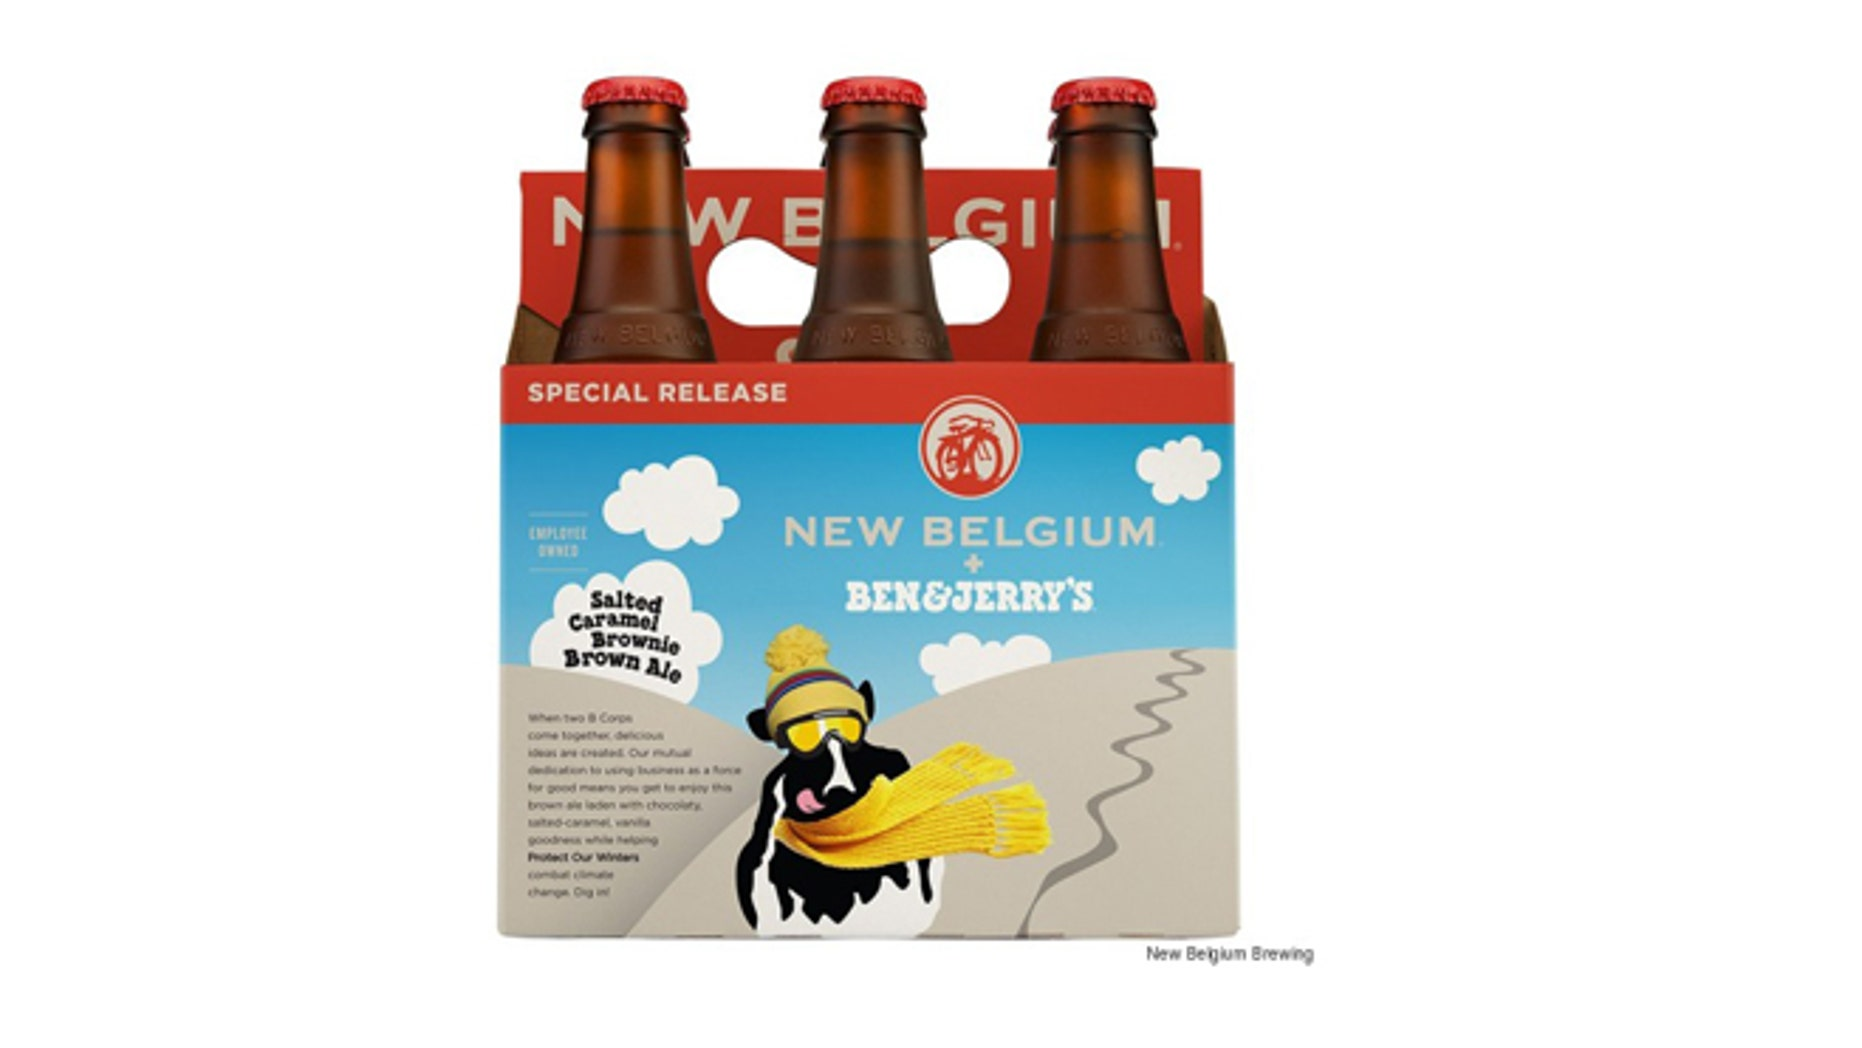 Ben & Jerry's is really making a beer.